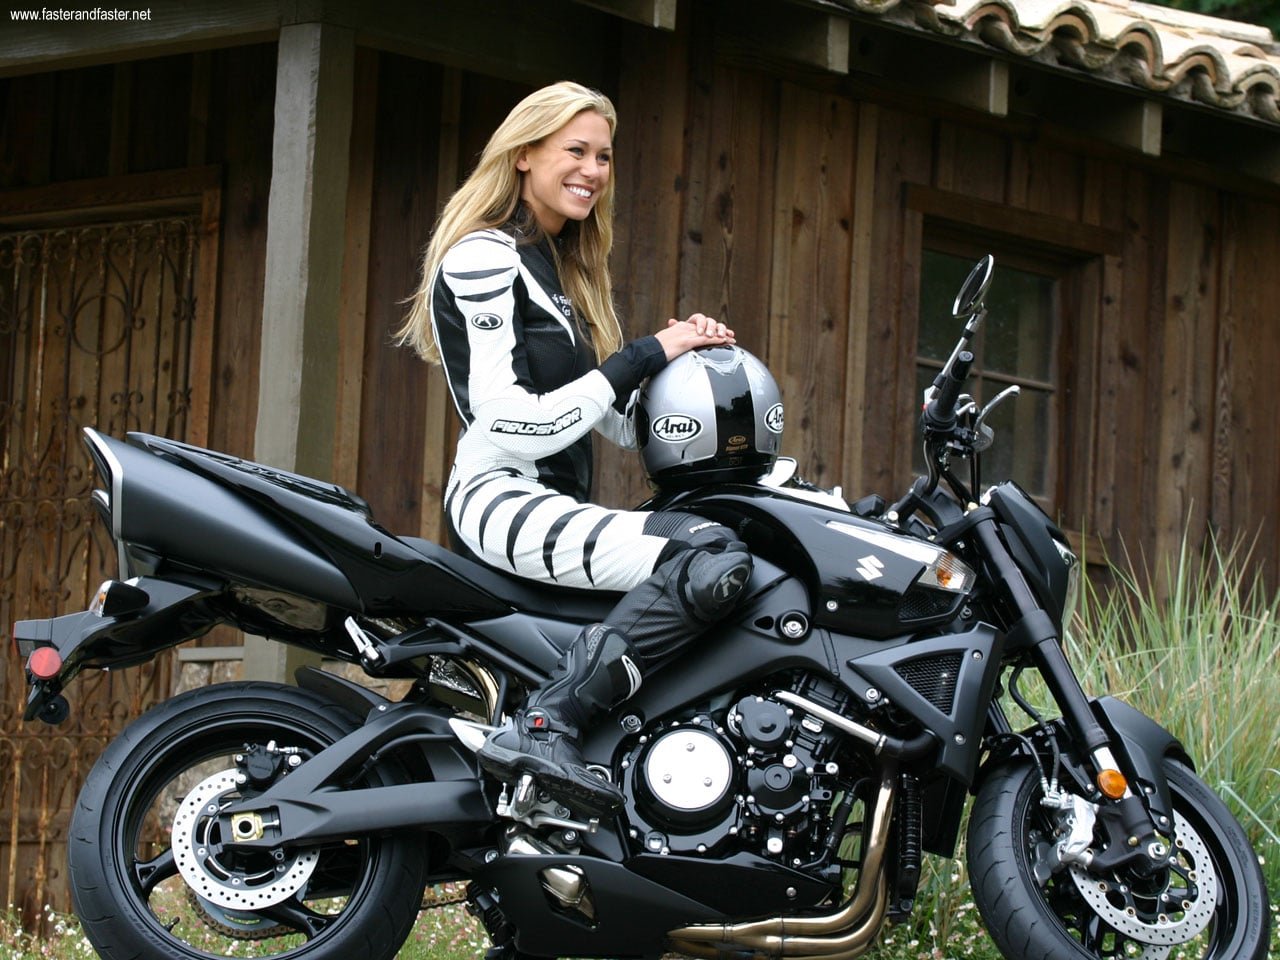 Fille motarde leslie porterfield la plus rapide sur la - Pictures of chicks on bikes ...